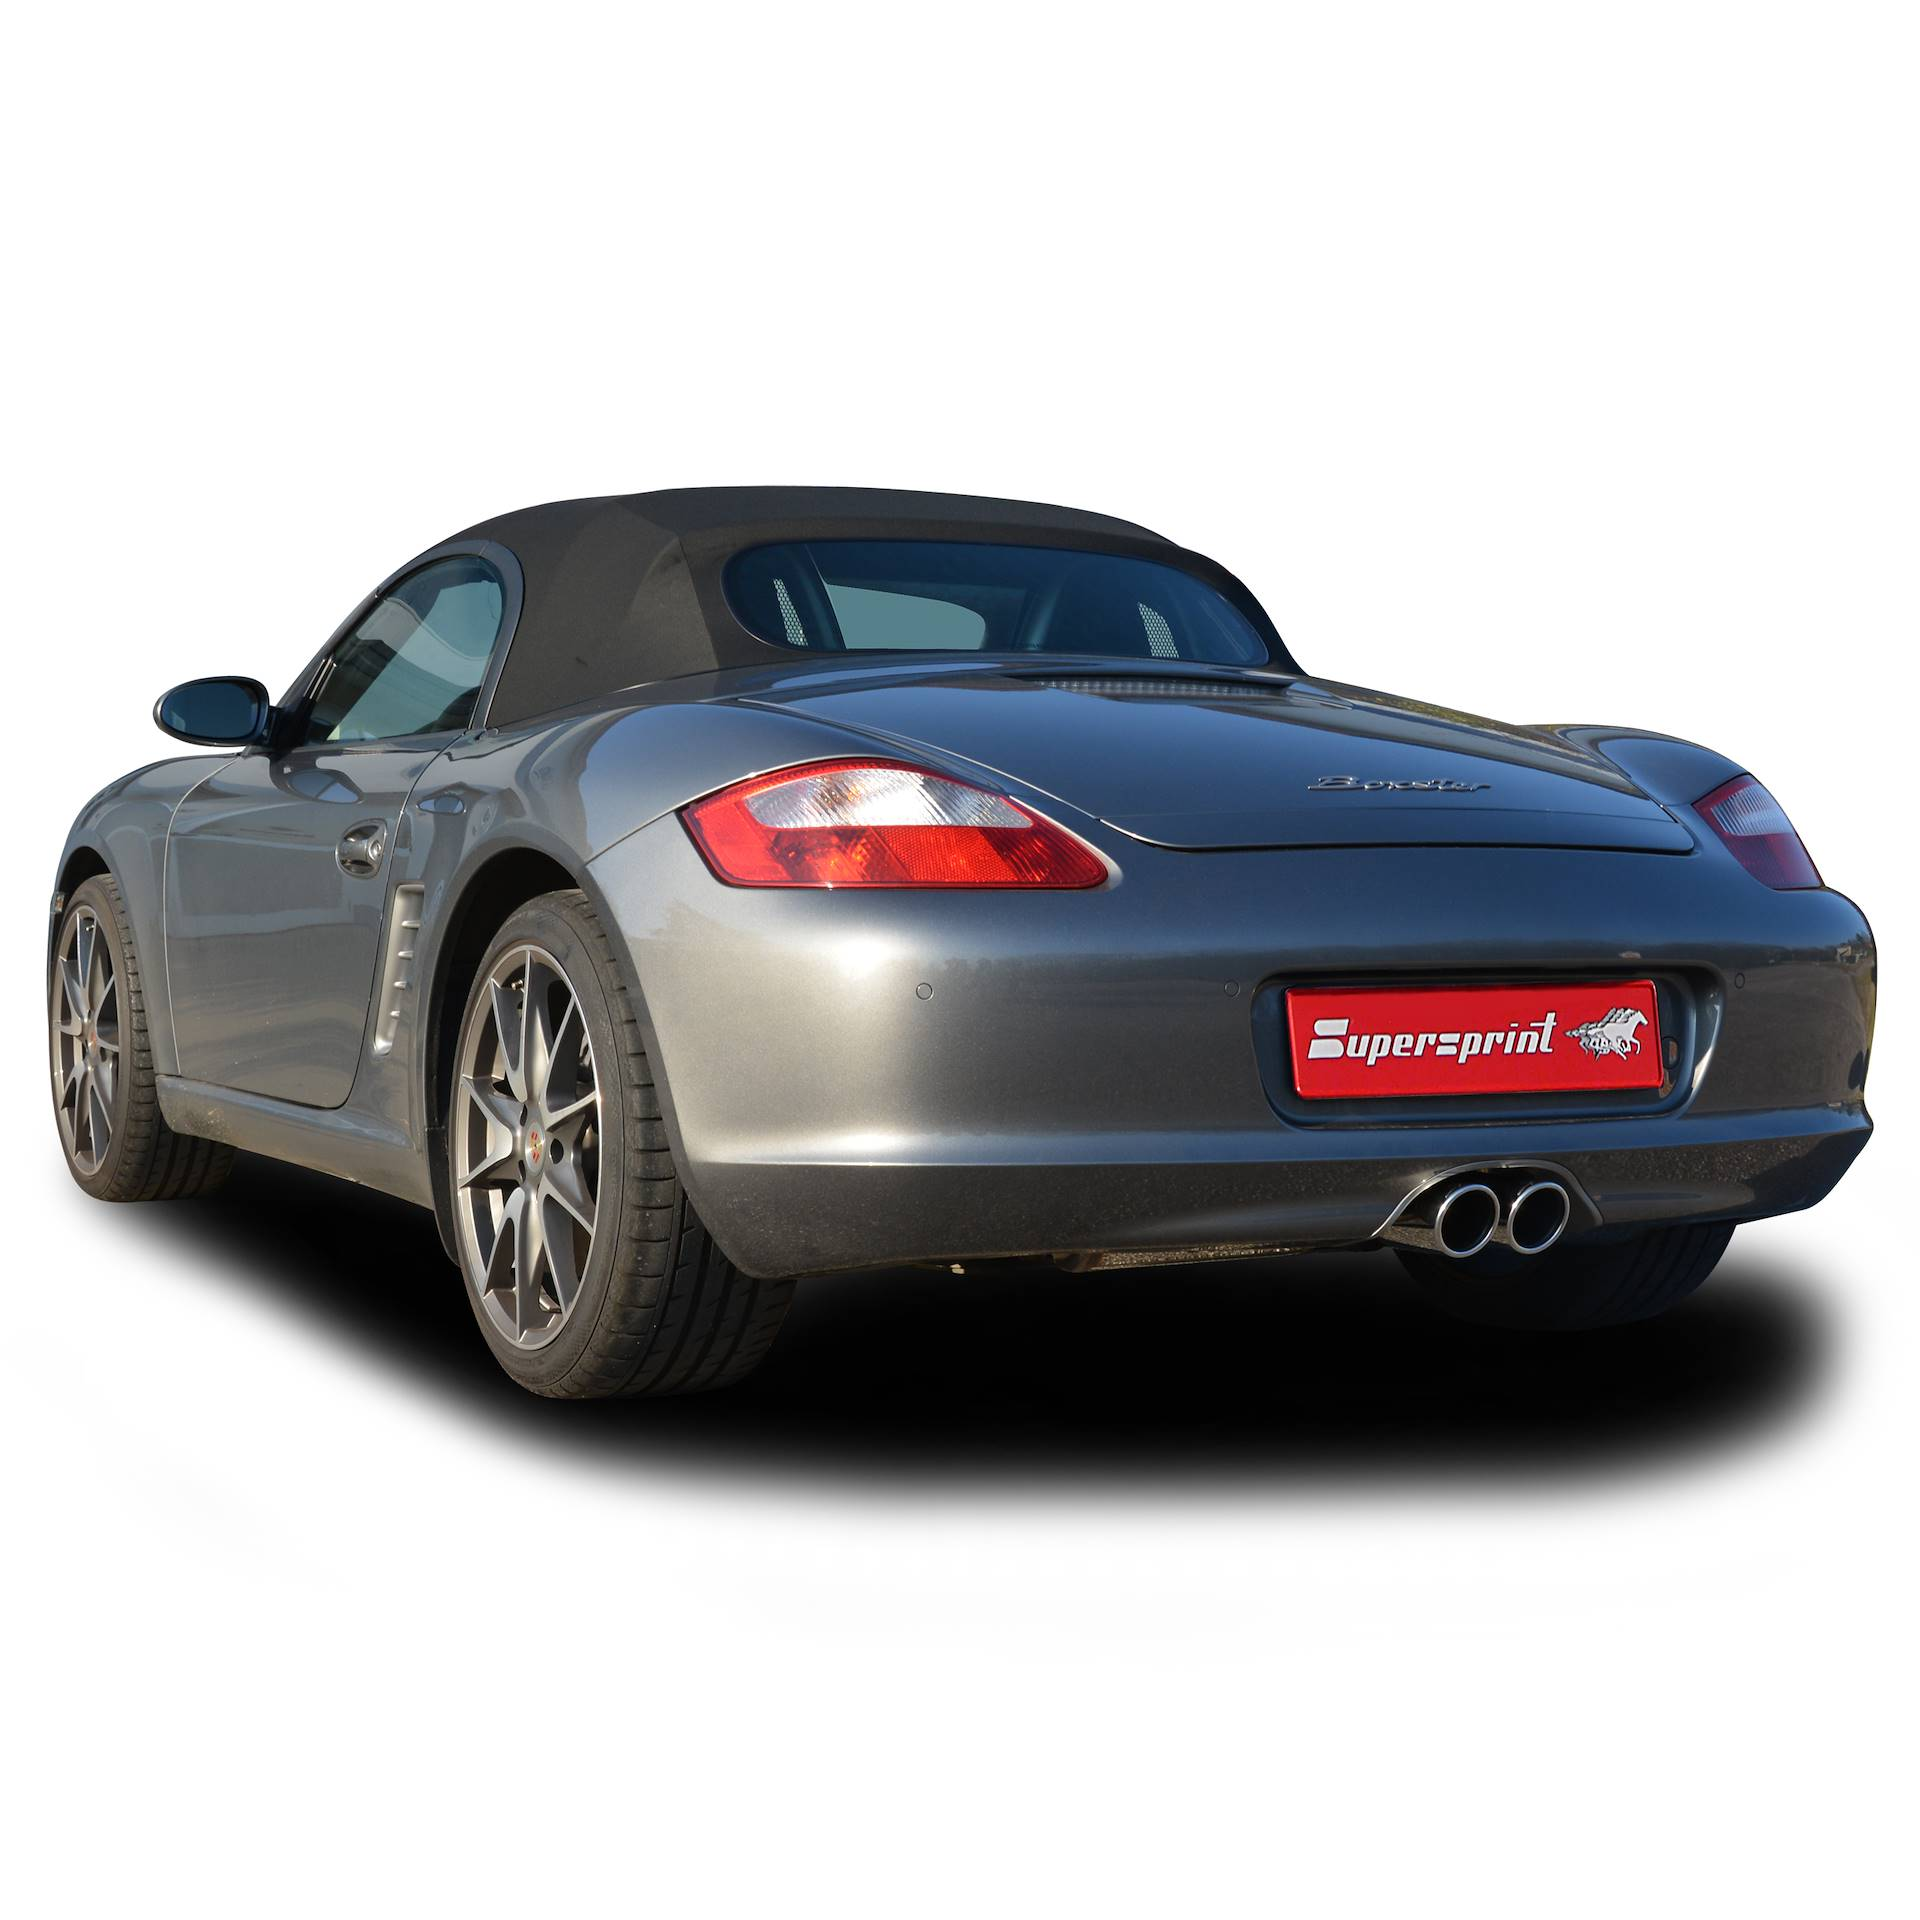 Performance Sport Exhaust For Porsche Boxster 987 2 7i